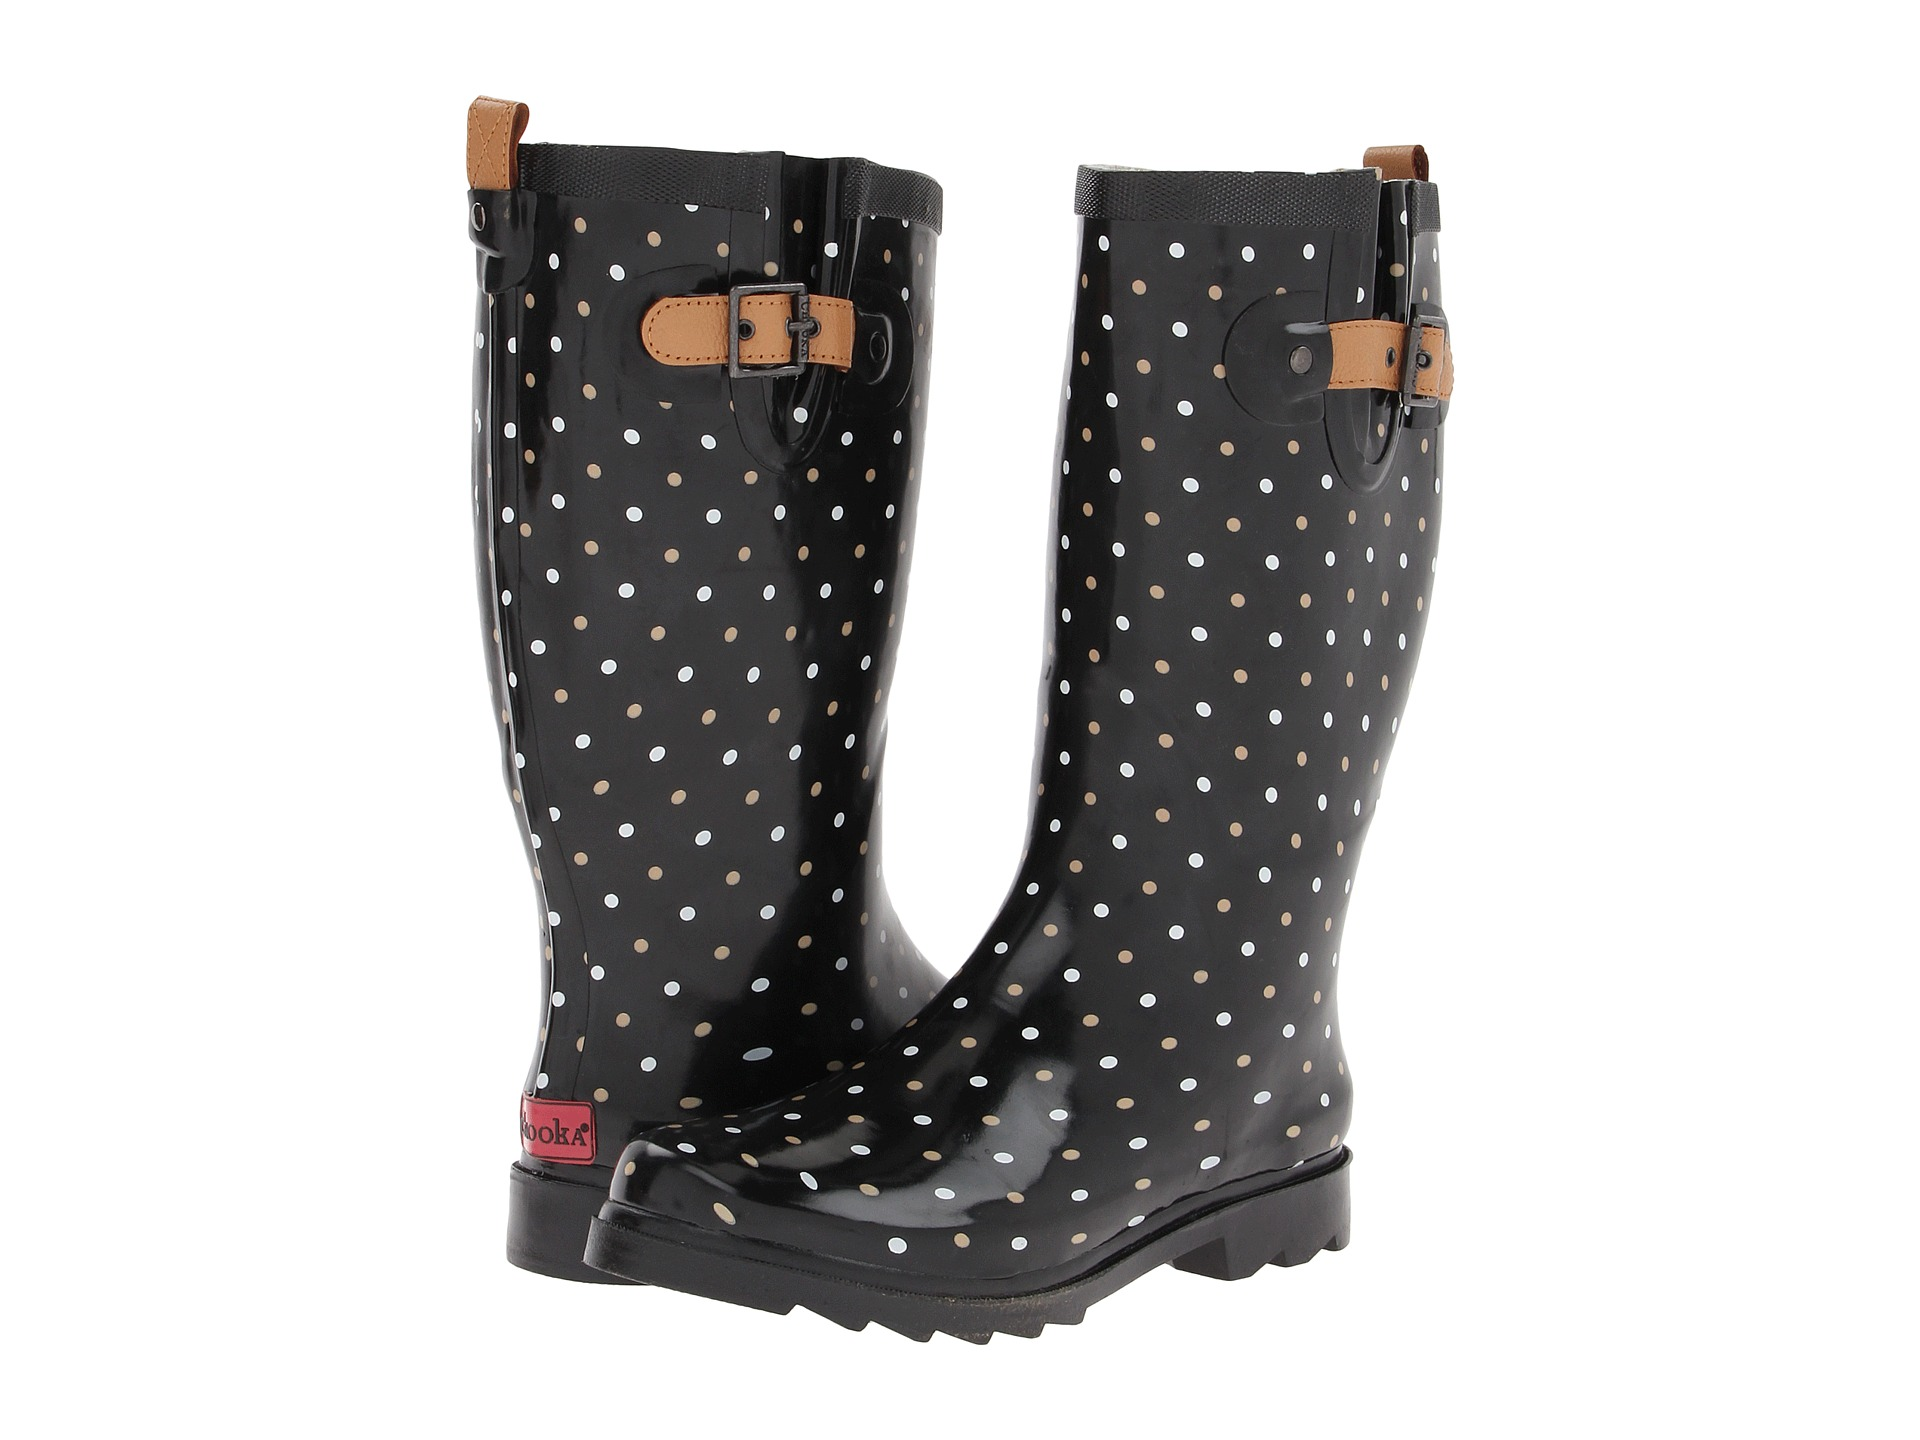 Chooka Classic Dot Rain Boot - Zappos.com Free Shipping BOTH Ways